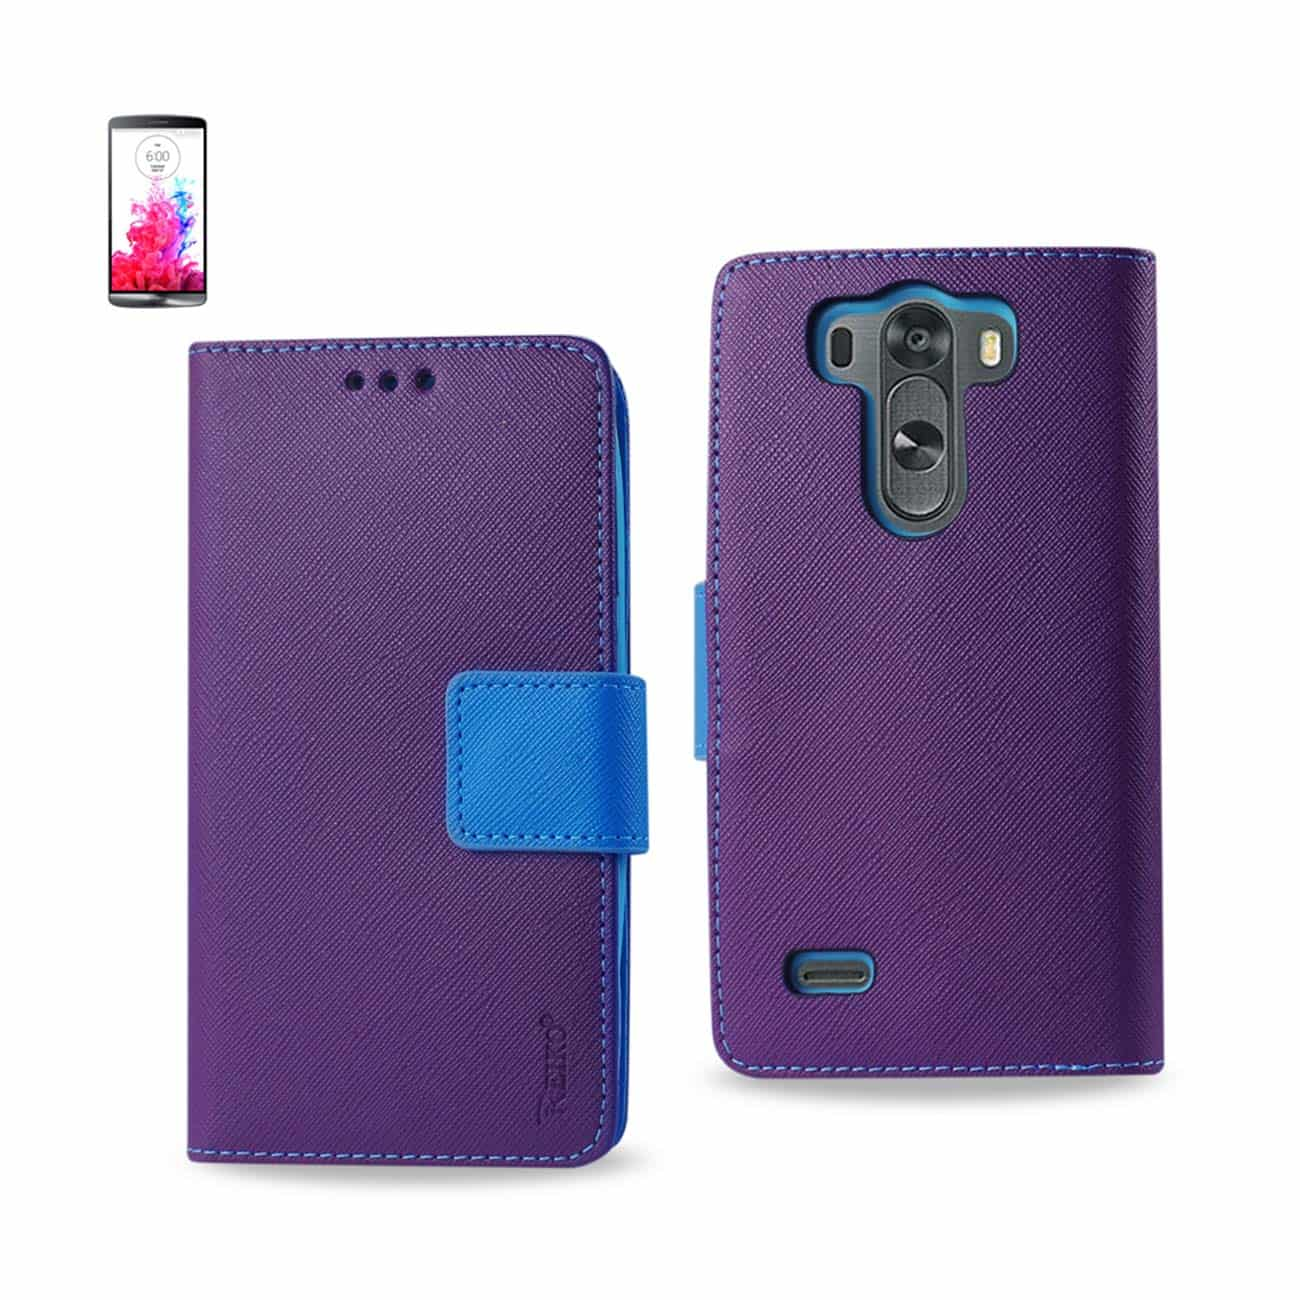 LG G3 MINI 3-IN-1 WALLET CASE IN PURPLE